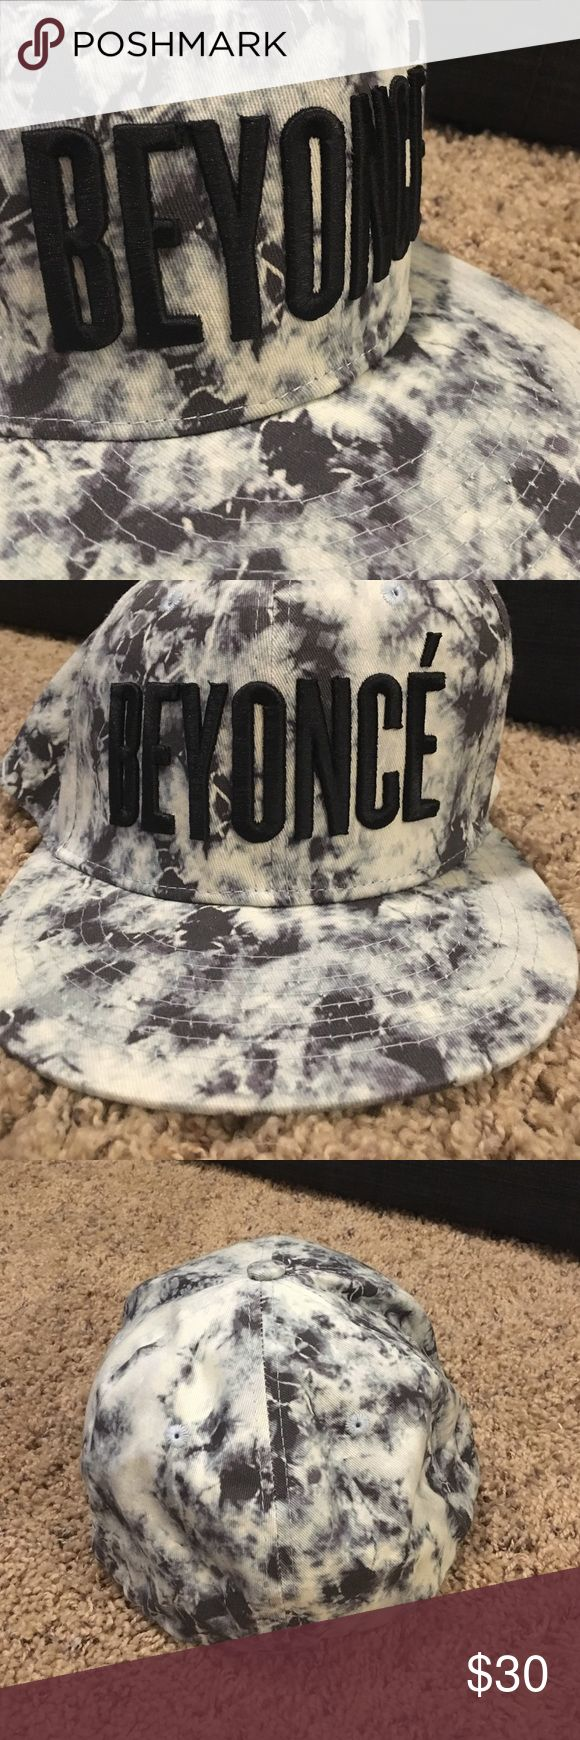 Beyoncé flat bill hat from Beyoncé.com Never worn. NWOT. Official Beyoncé merchandise. Beyoncé Accessories Hats